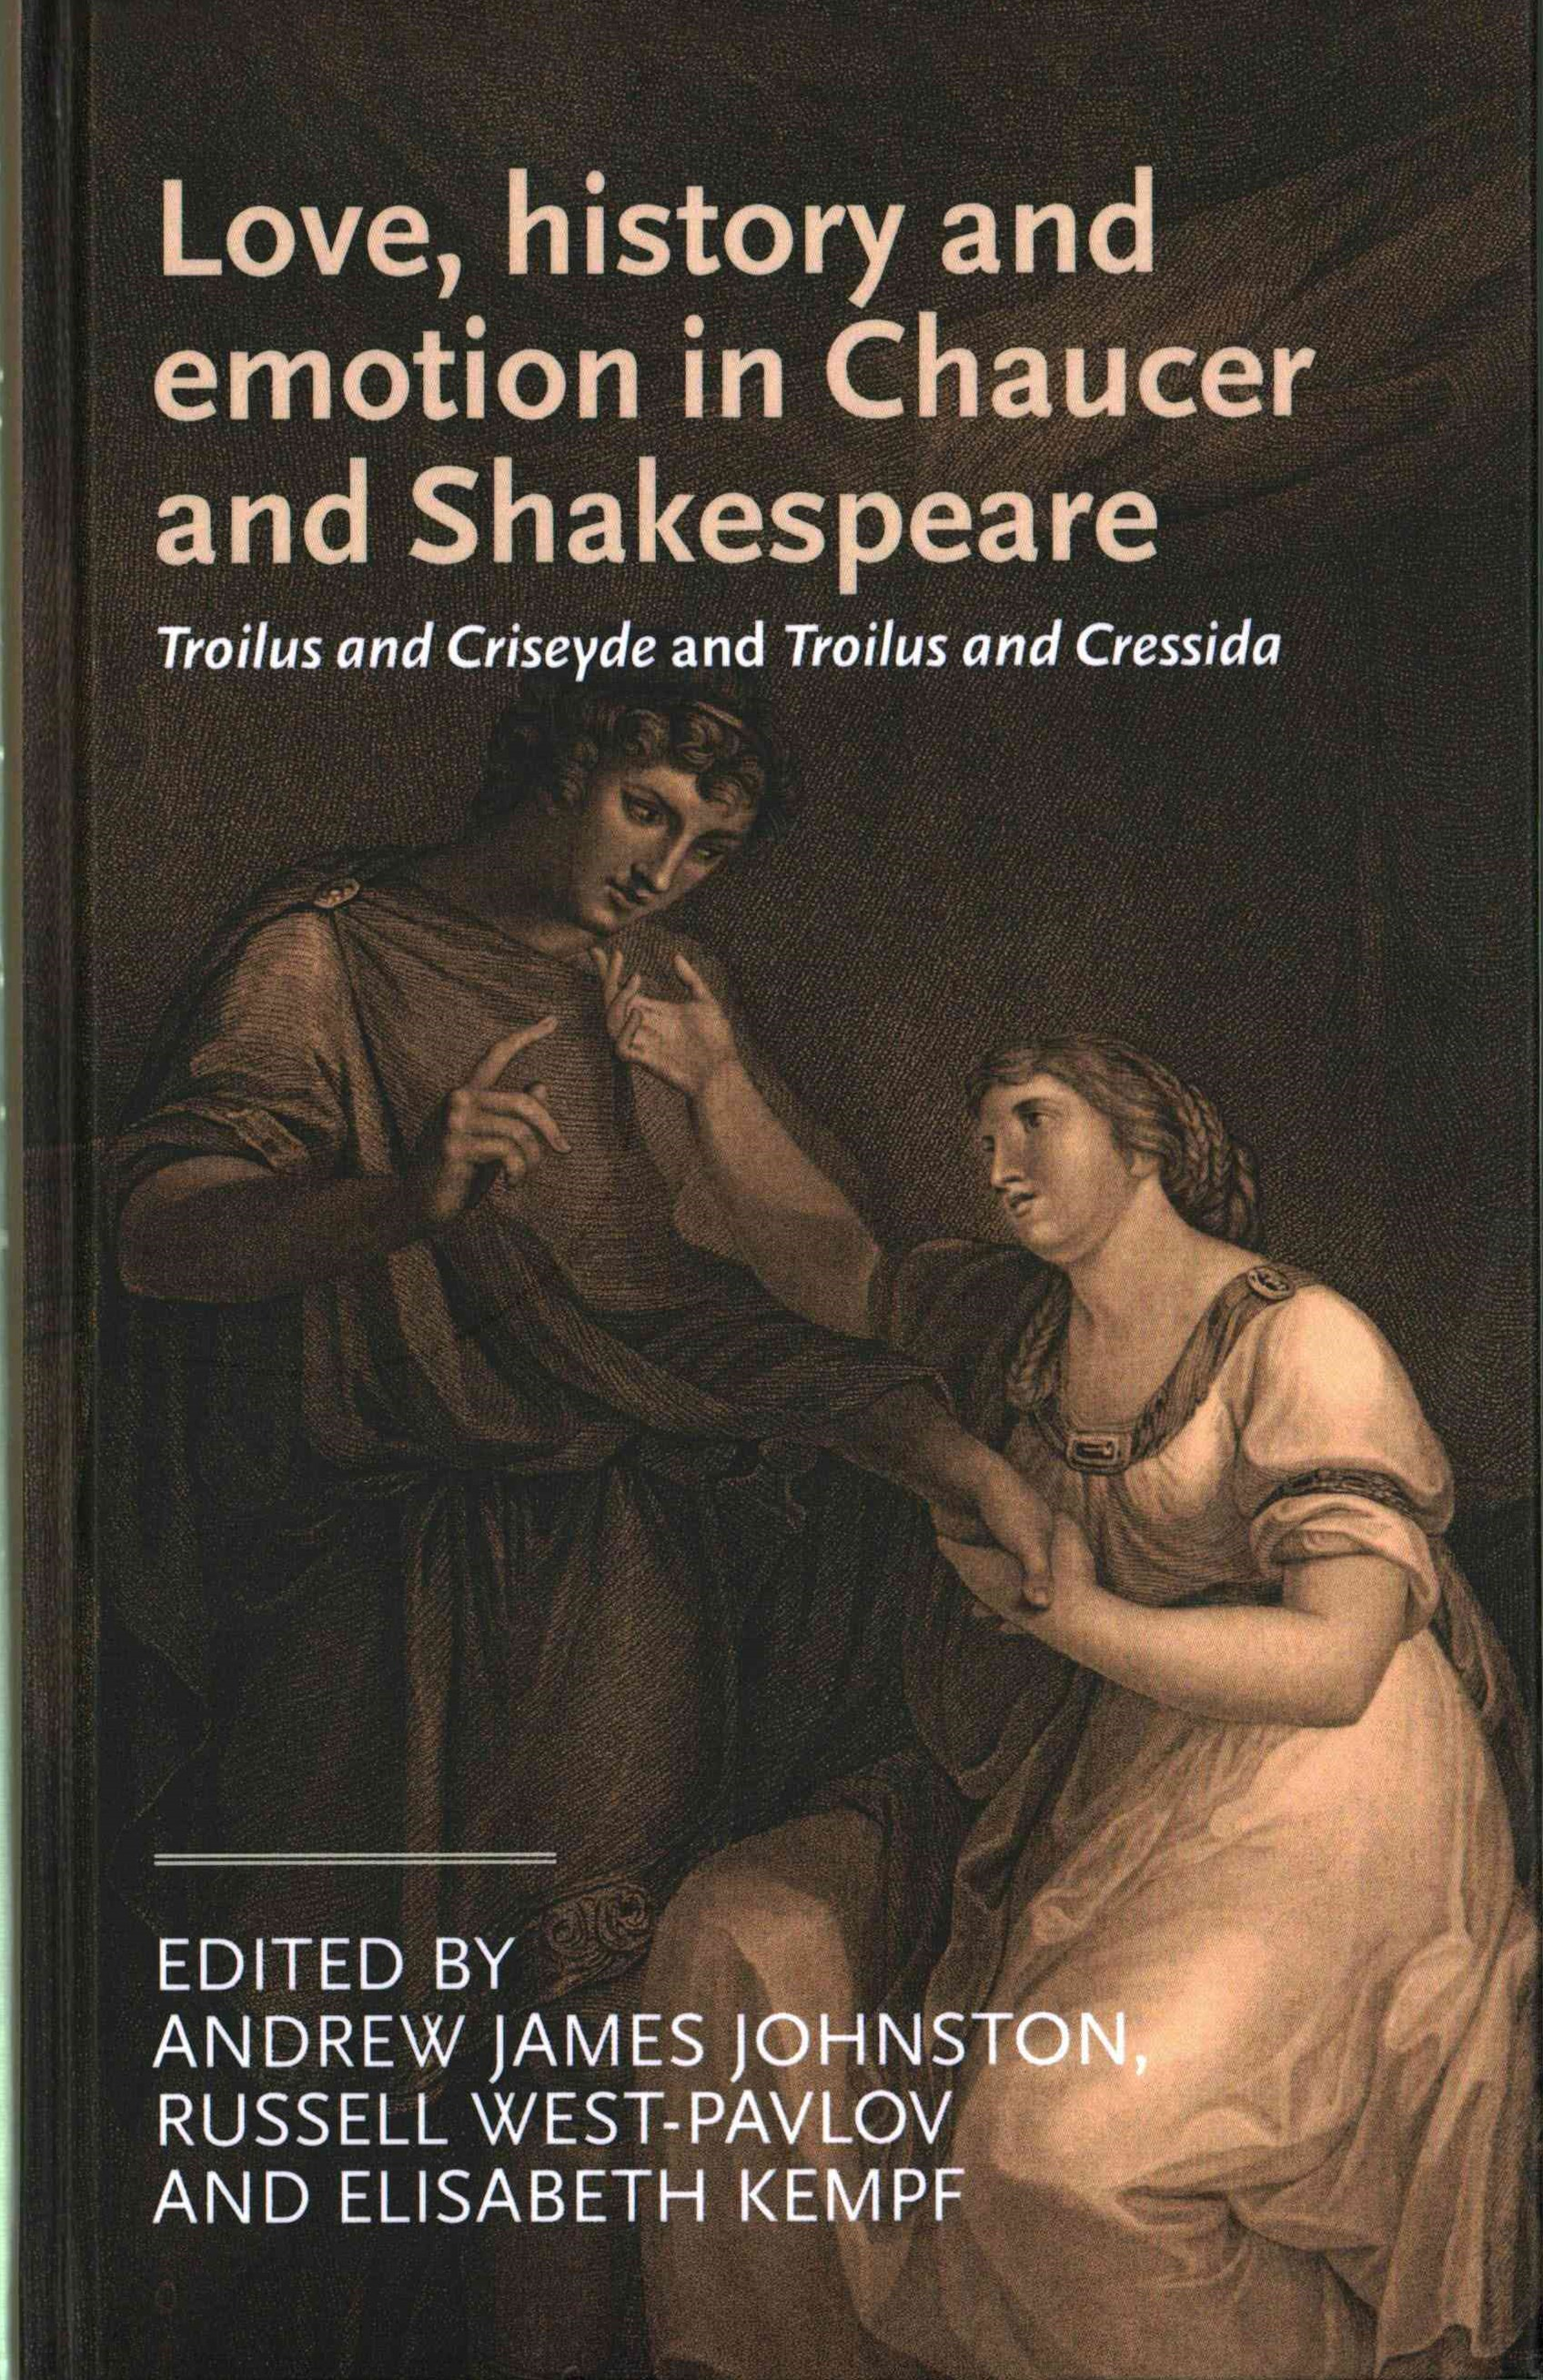 Love, History and Emotion in Chaucer and Shakespeare